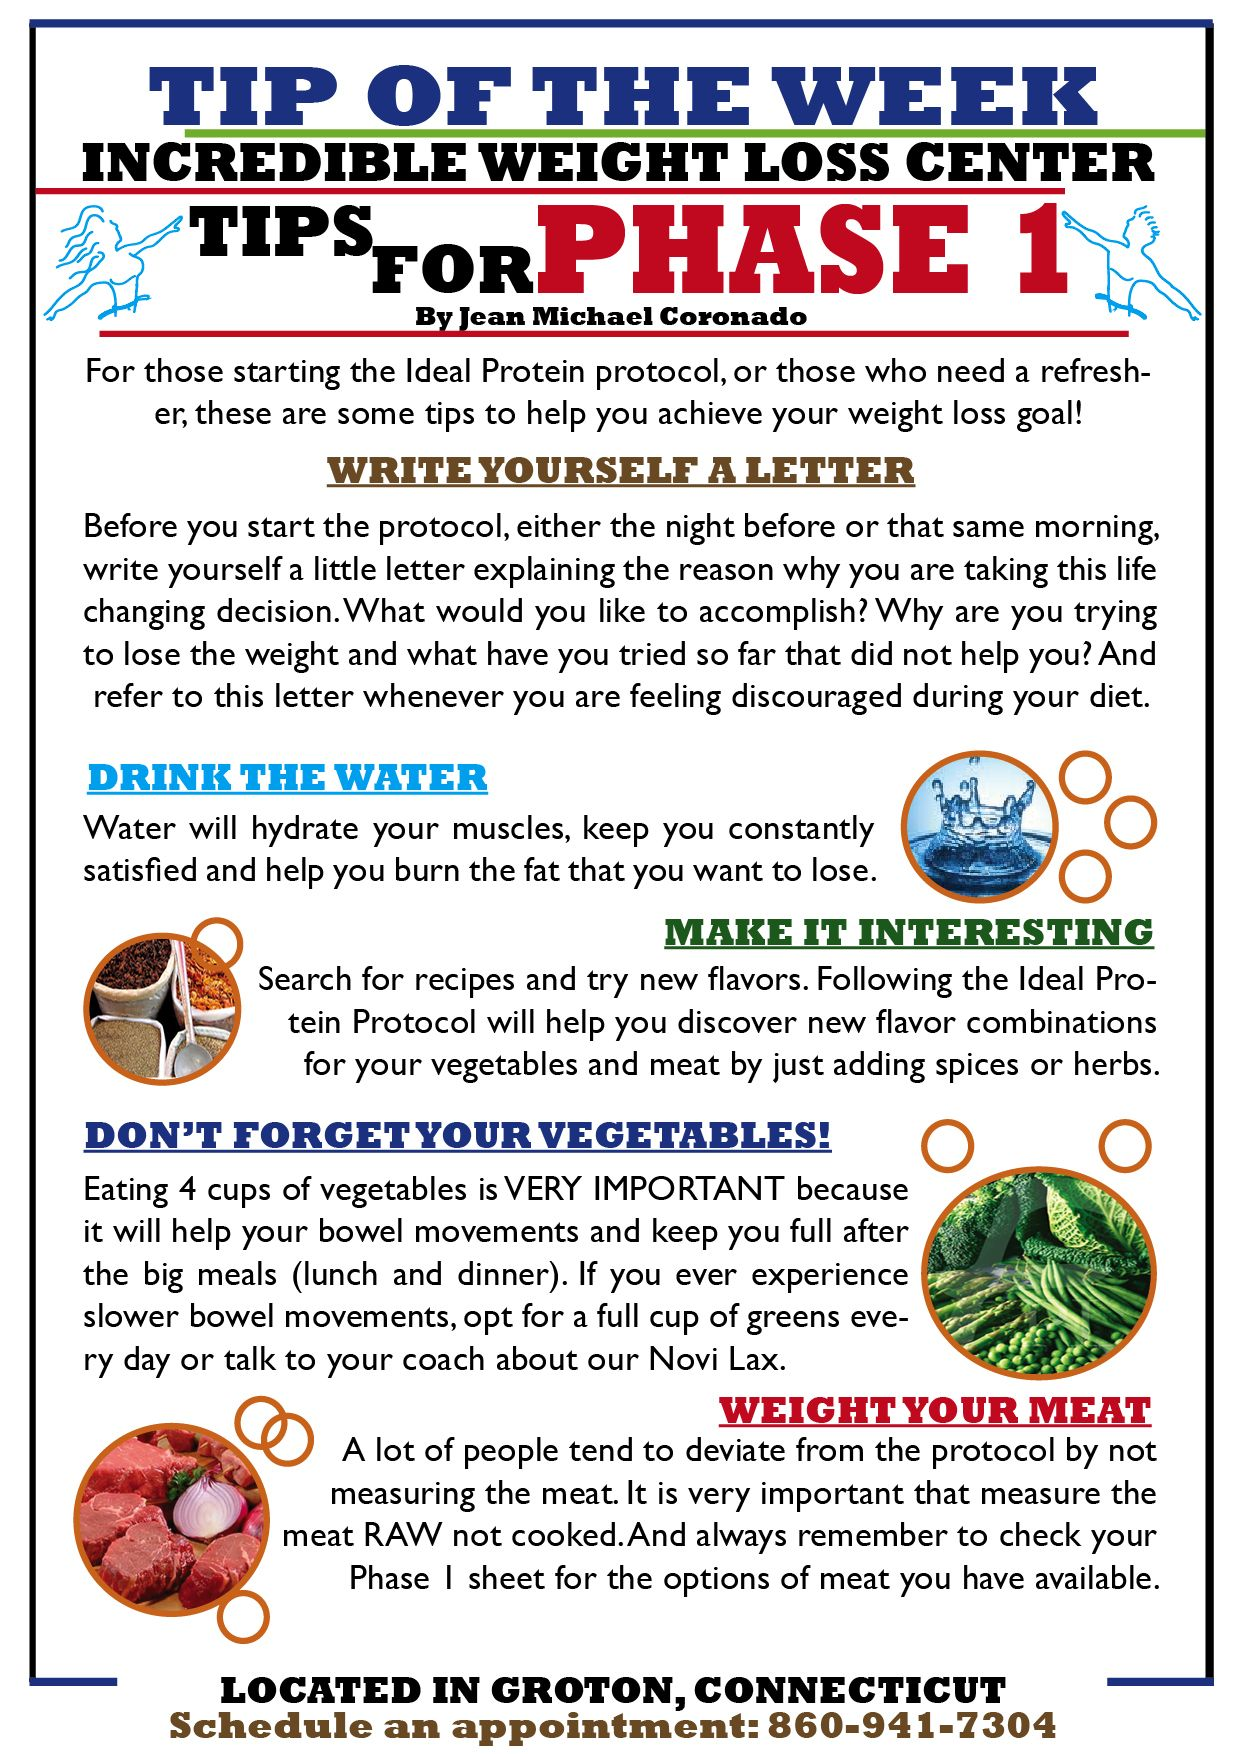 Pin By Leanne Bryan On Ideal Protein Phase 1 Tips Ideal Protein Recipes Ideal Protein Diet Ideal Protein